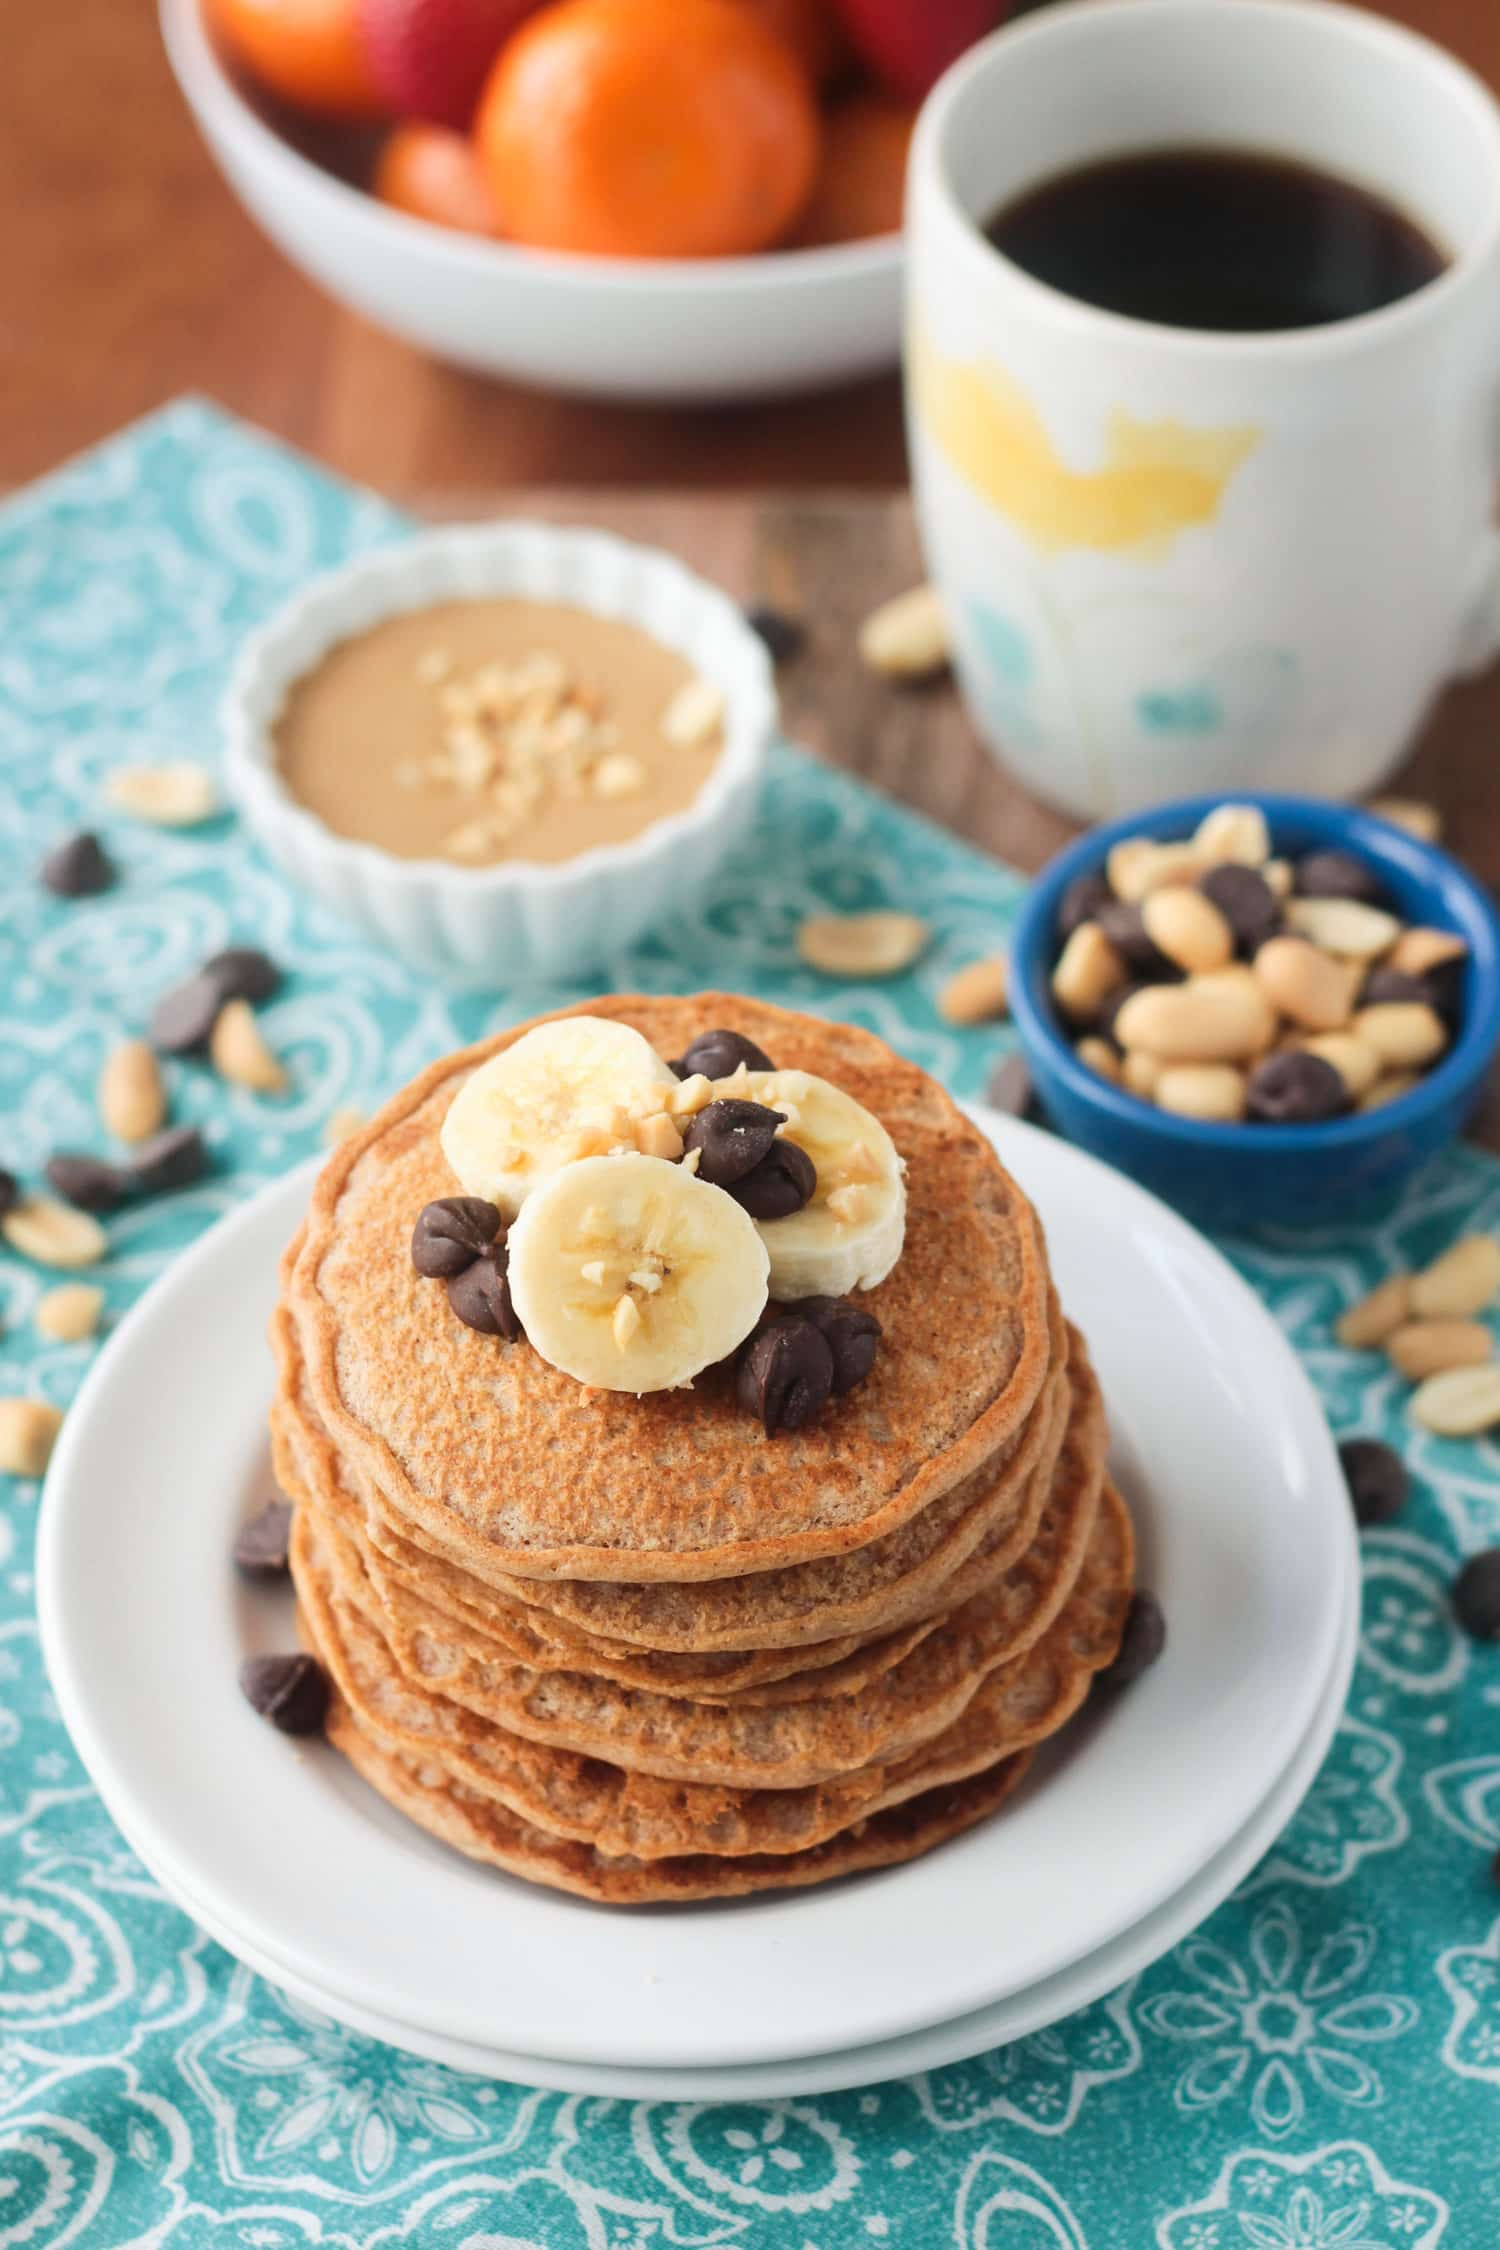 Stack of pancakes topped with banana slices and chocolate chips. Cup of coffee and a bowl of oranges in the background.